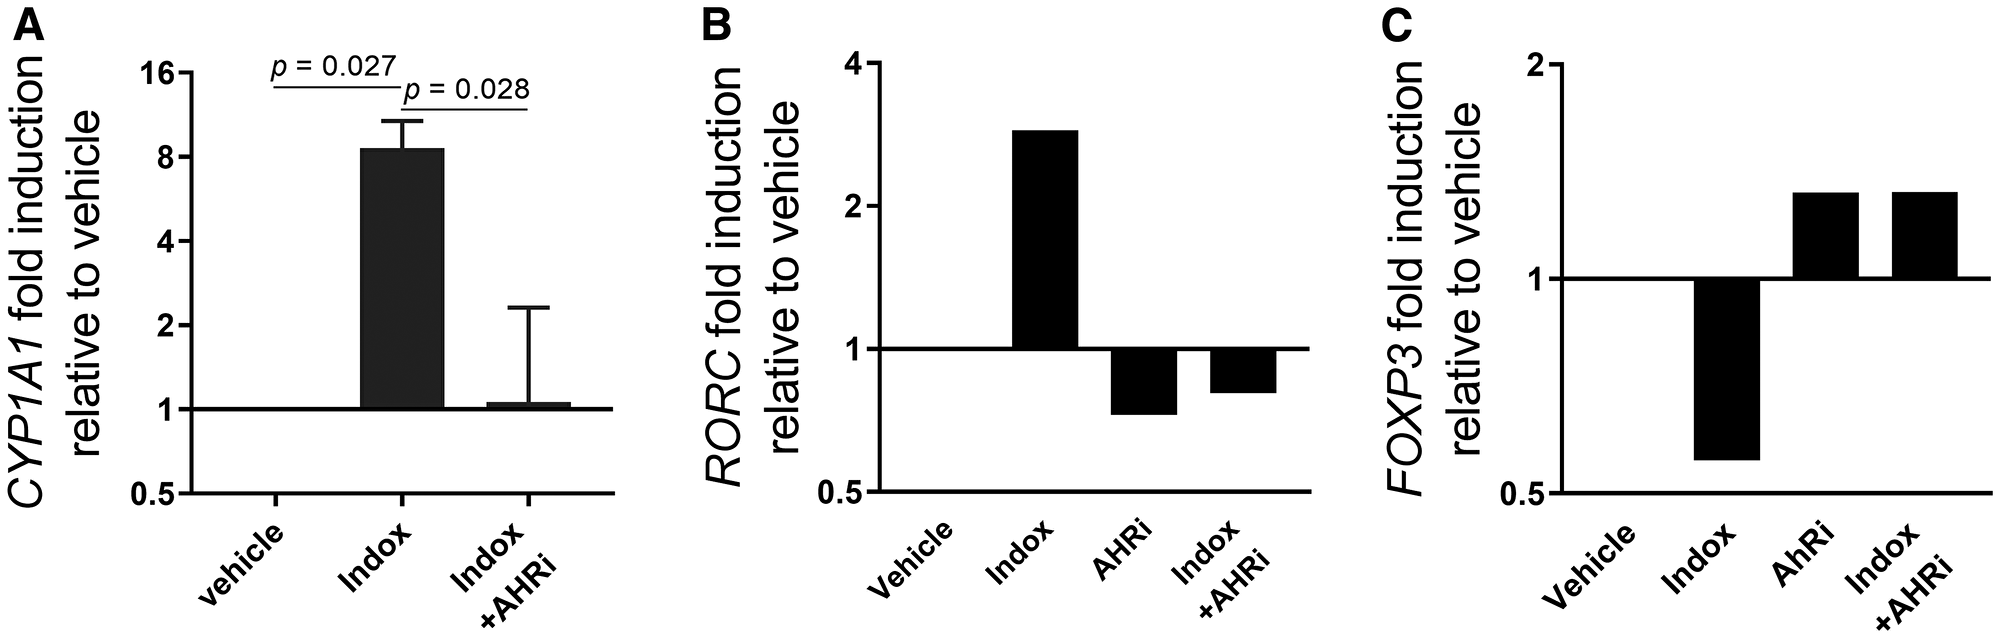 Indoximod regulates transcription of AhR-controlled genes in CD4+ T cells.